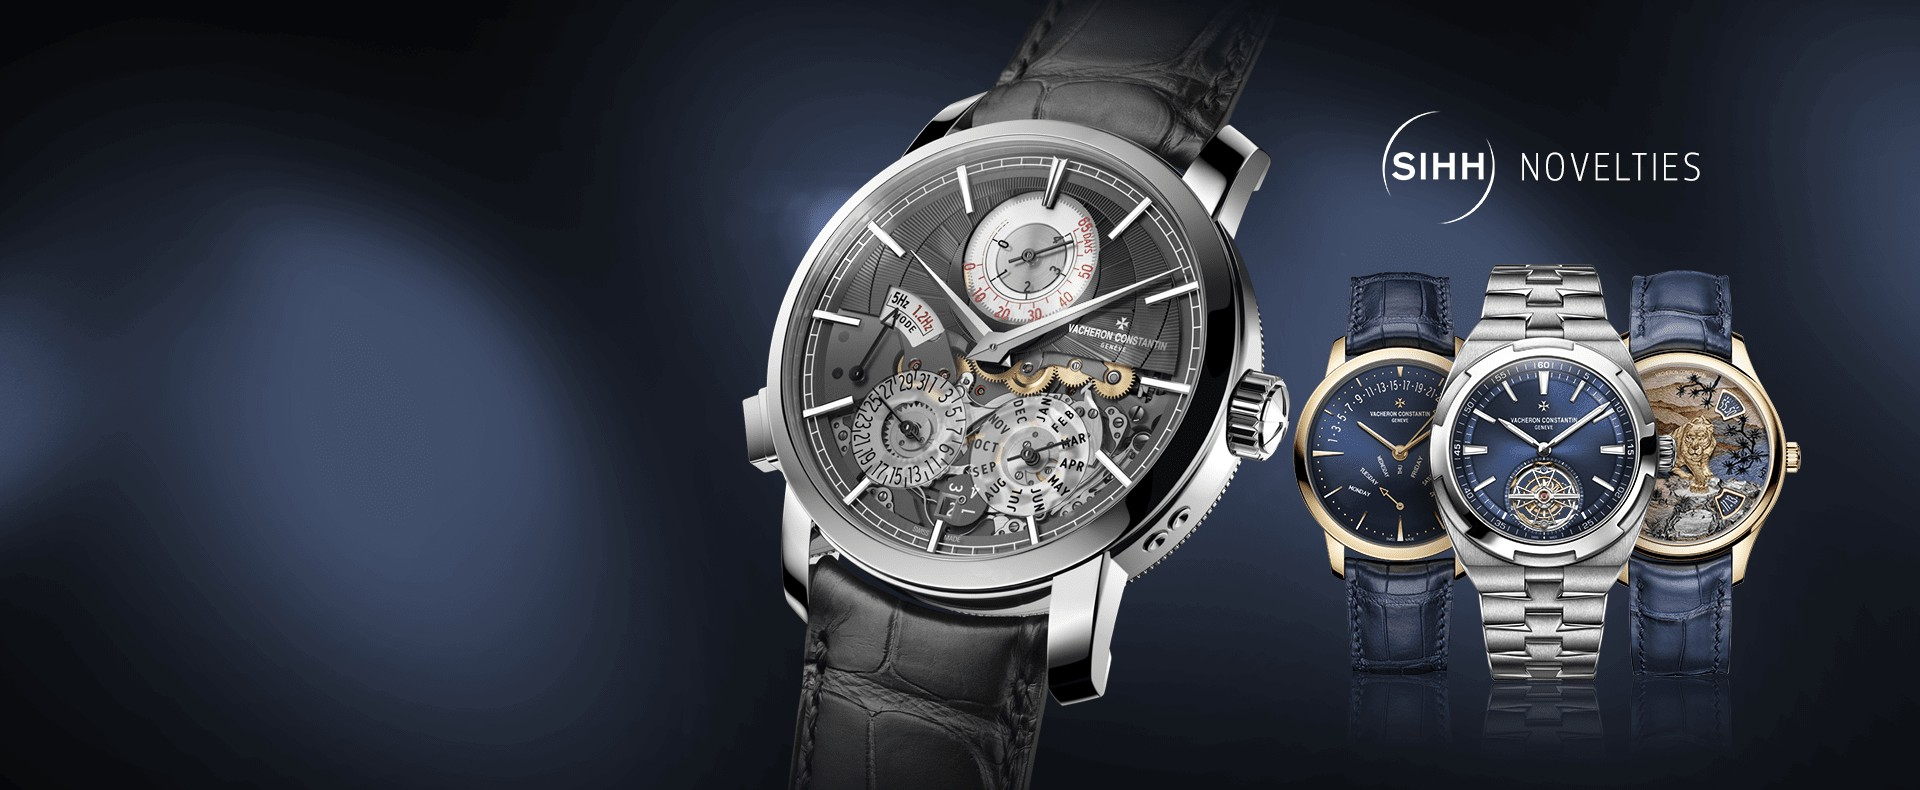 Vacheron Constantin - Luxury Watches and Fine Watches